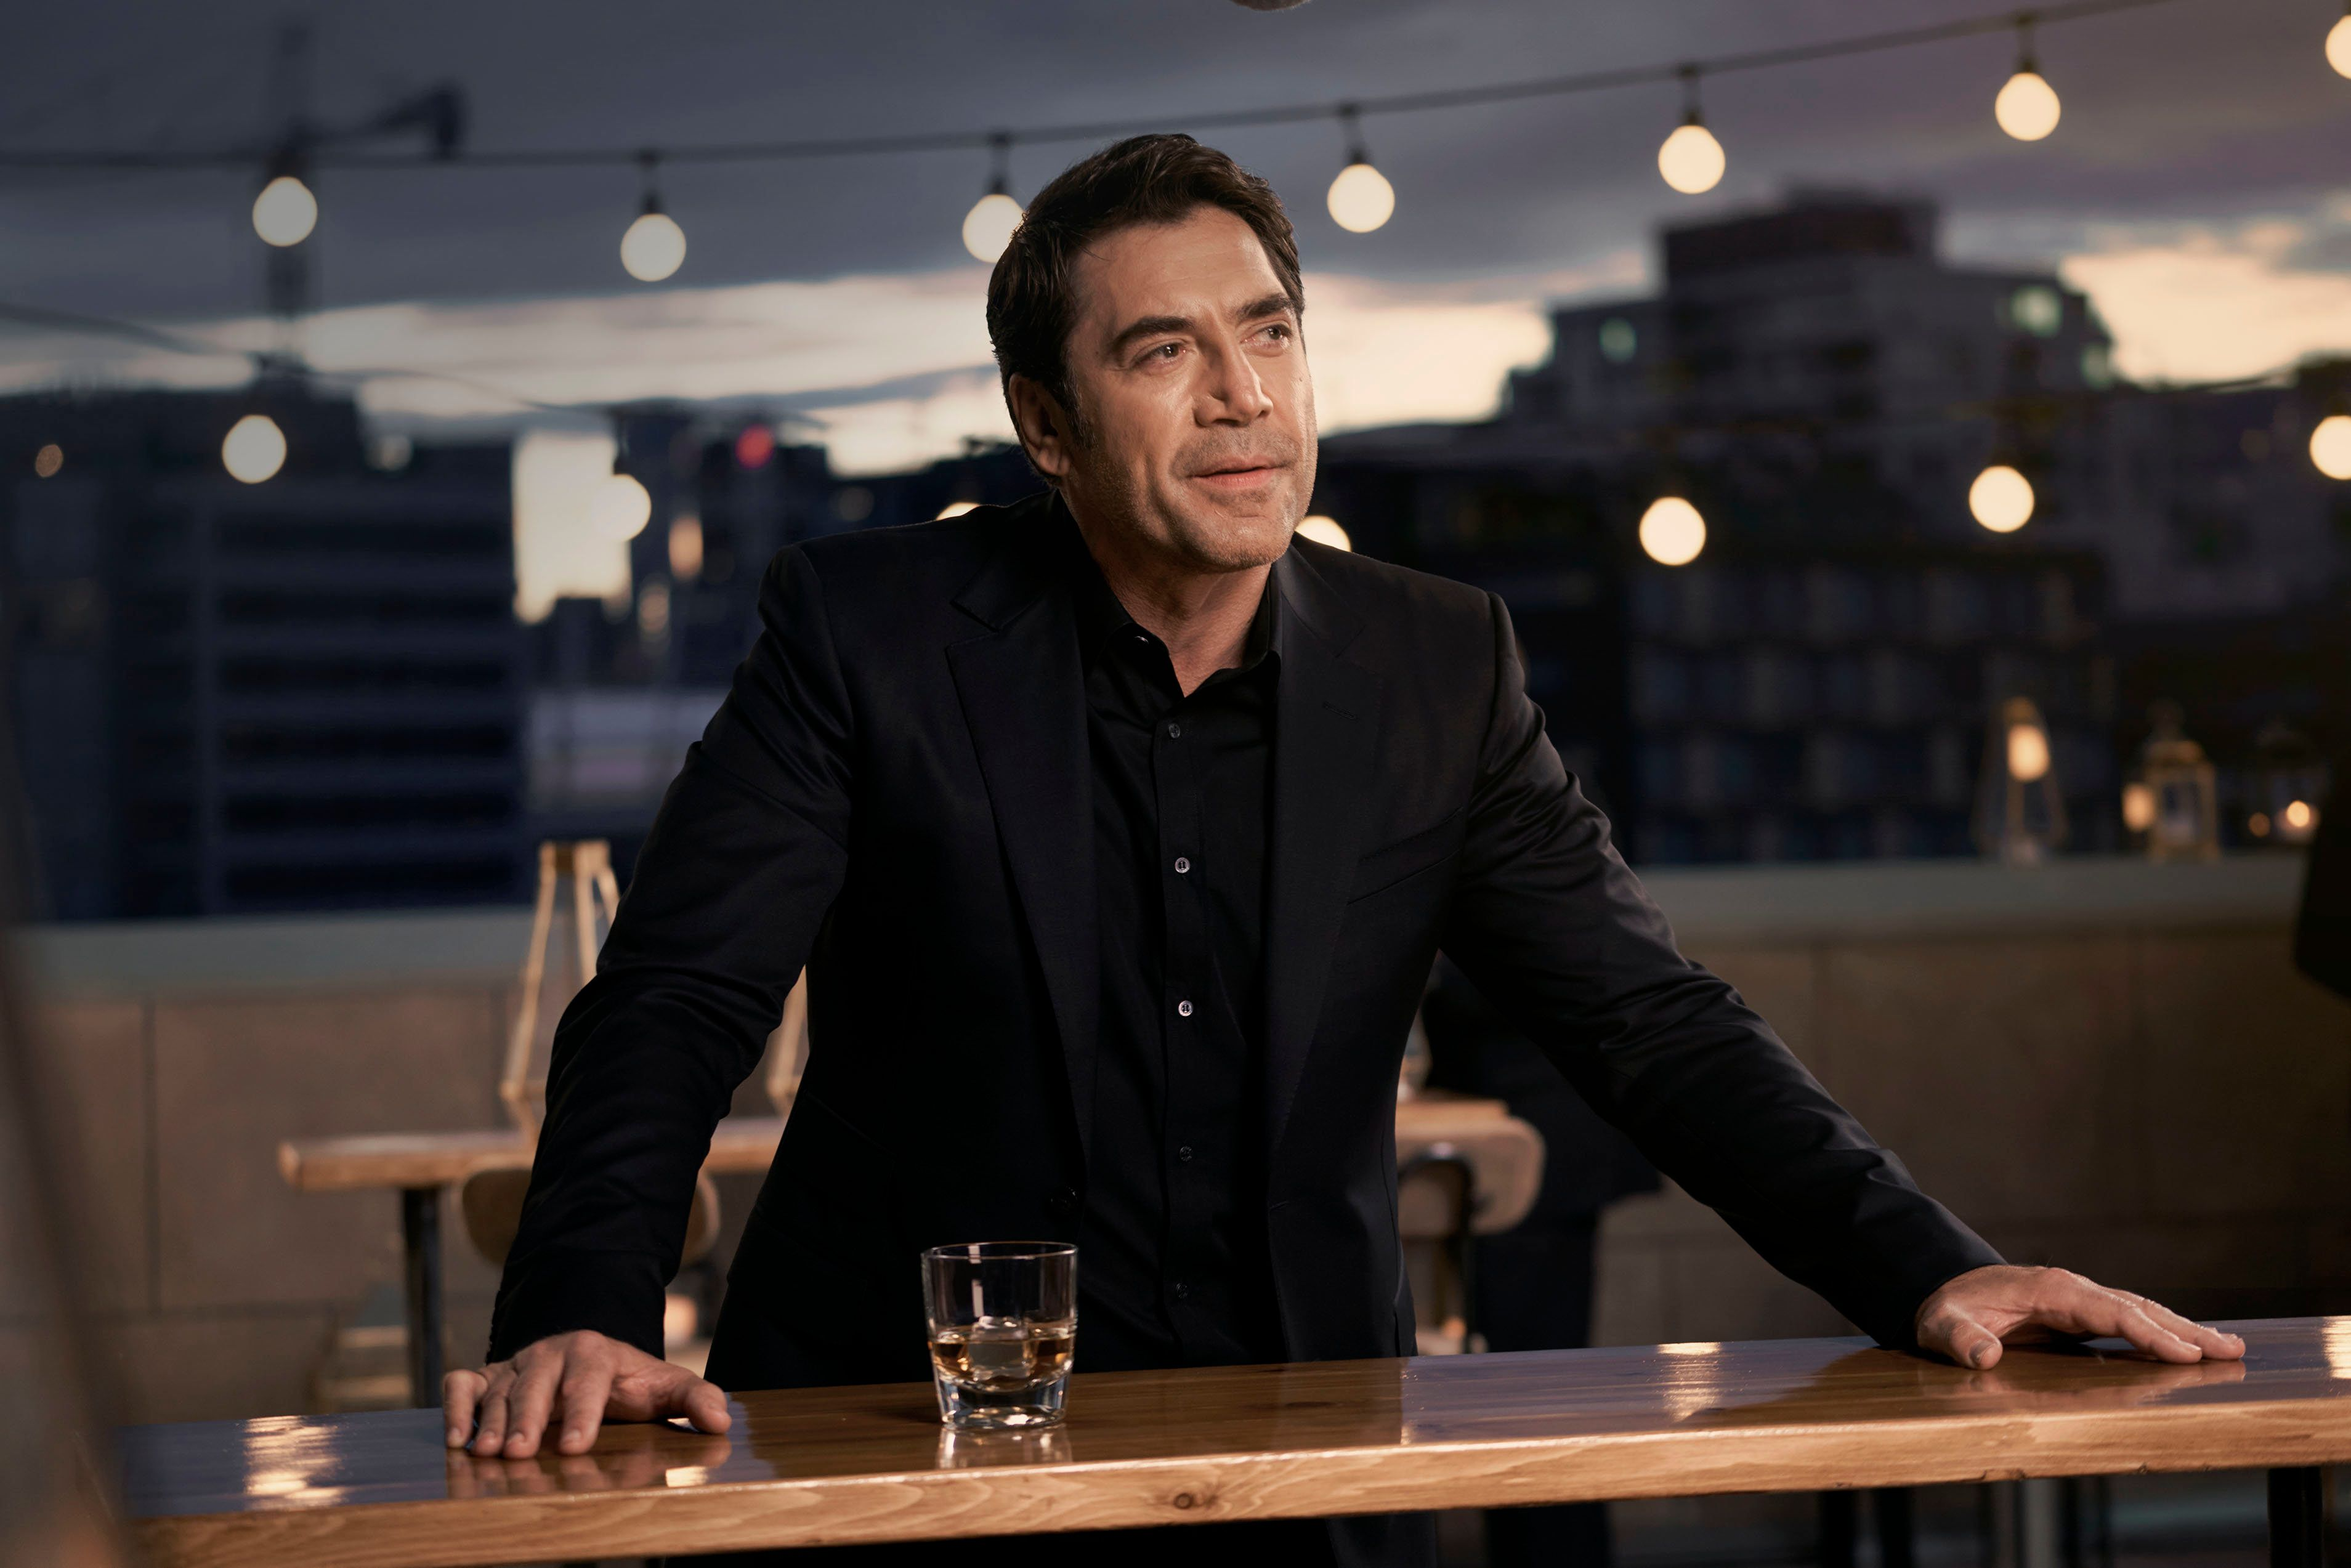 WISE WORDS: Javier Bardem On How The Pursuit Of Happiness Can Drive You